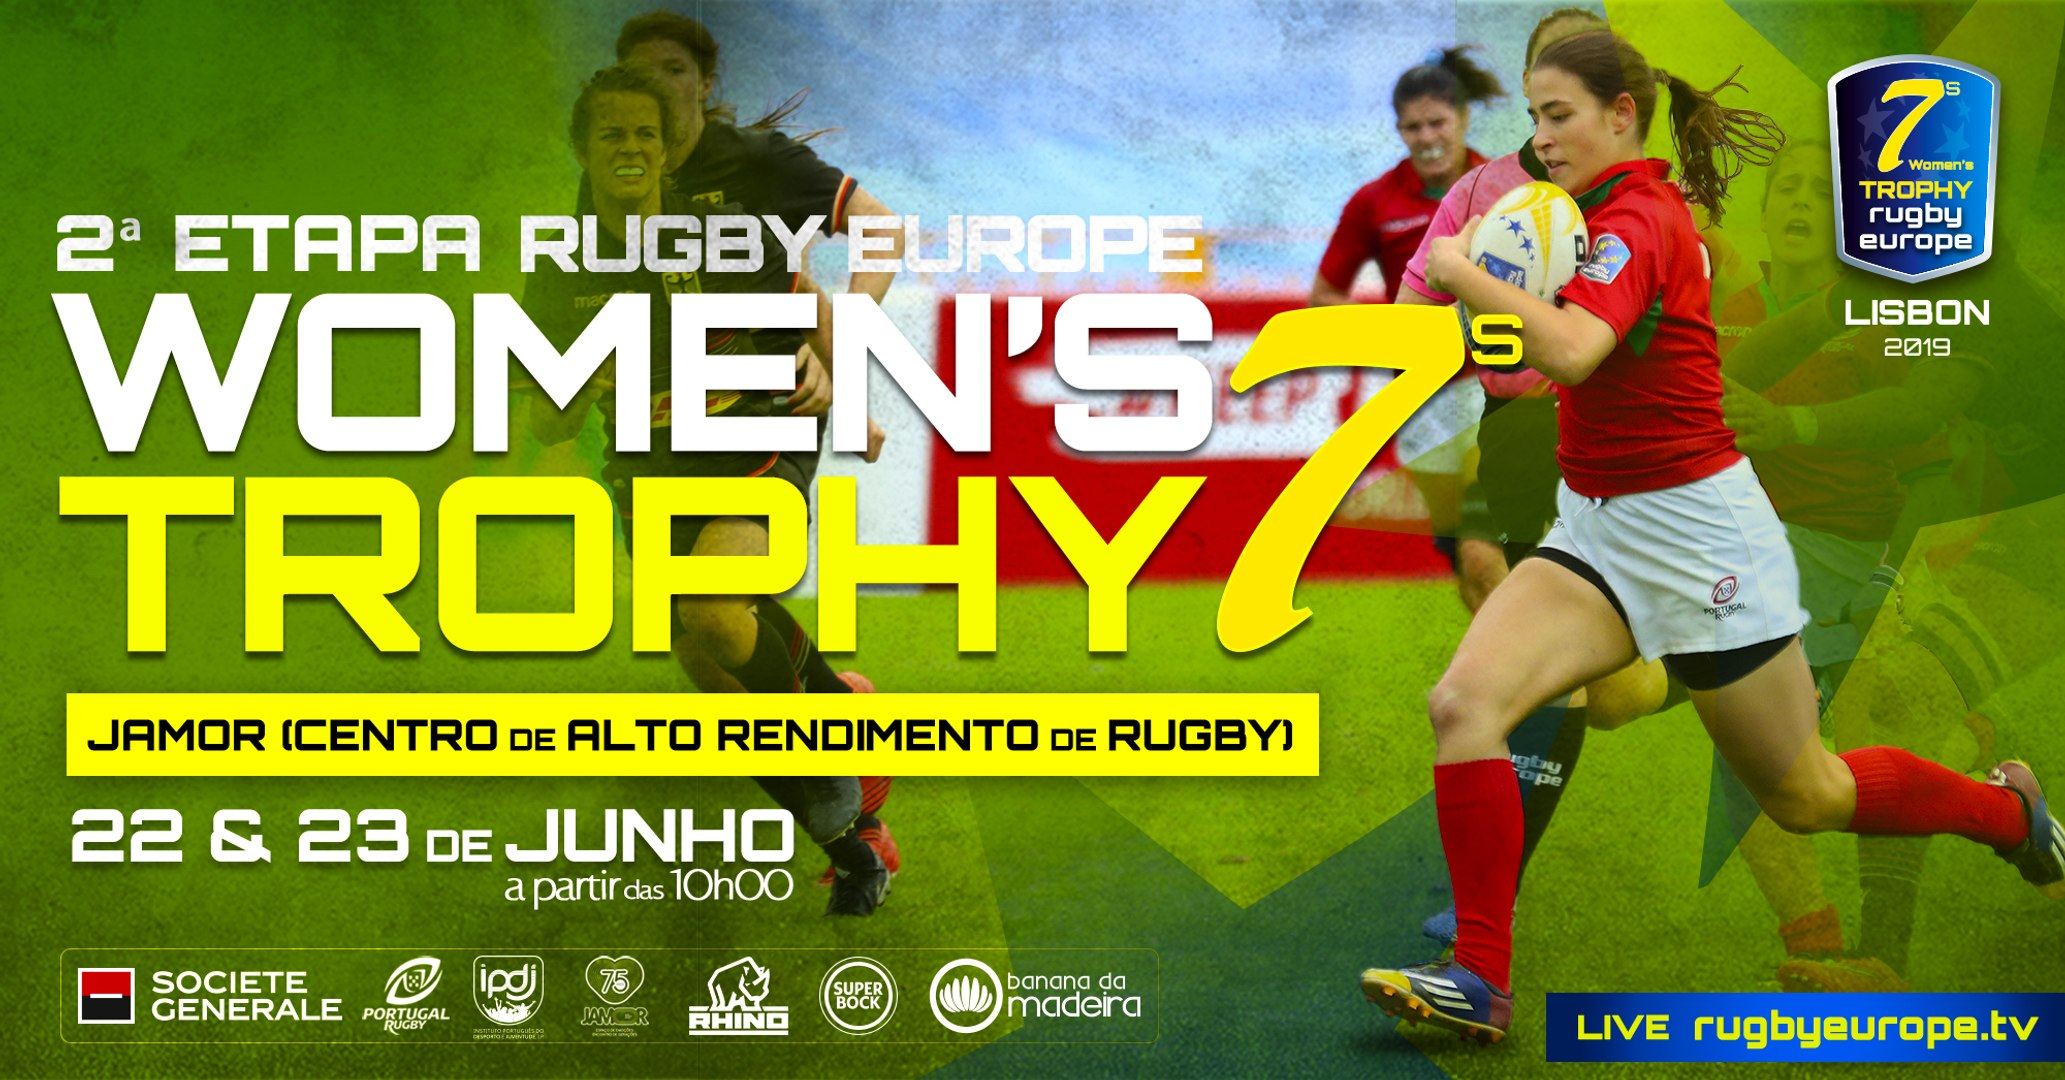 RUGBY EUROPE WOMEN 7S TROPHY 2019 - LEG 2 - LISBON